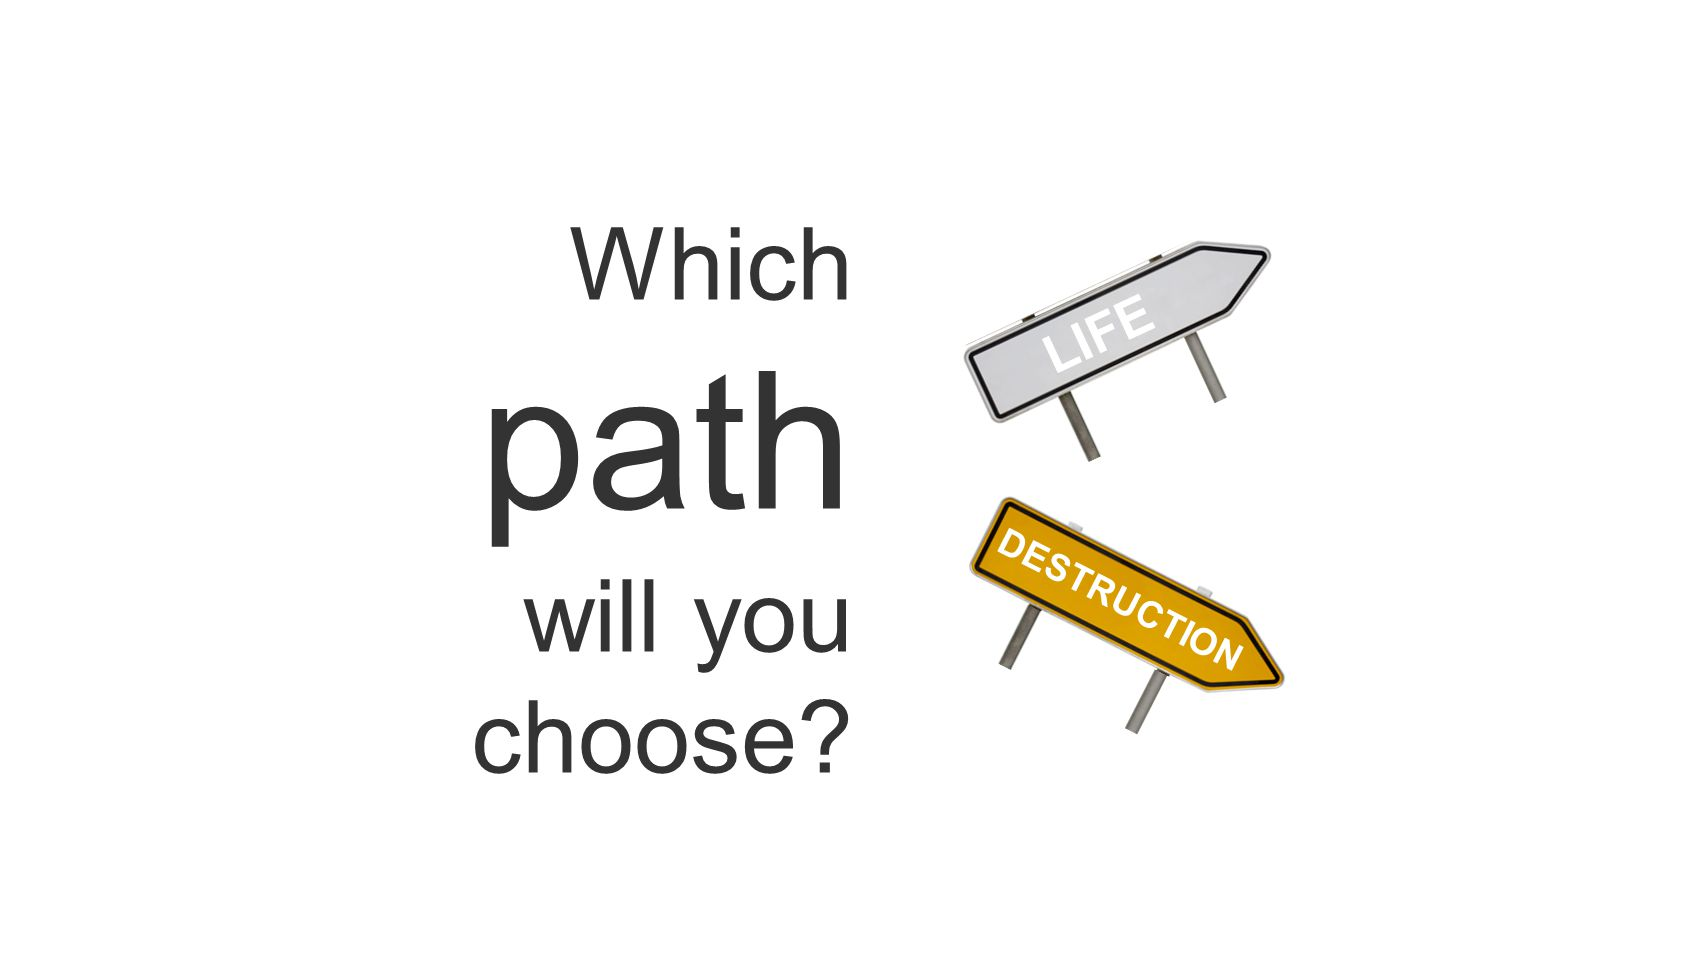 LIFE Which path will you choose DESTRUCTION